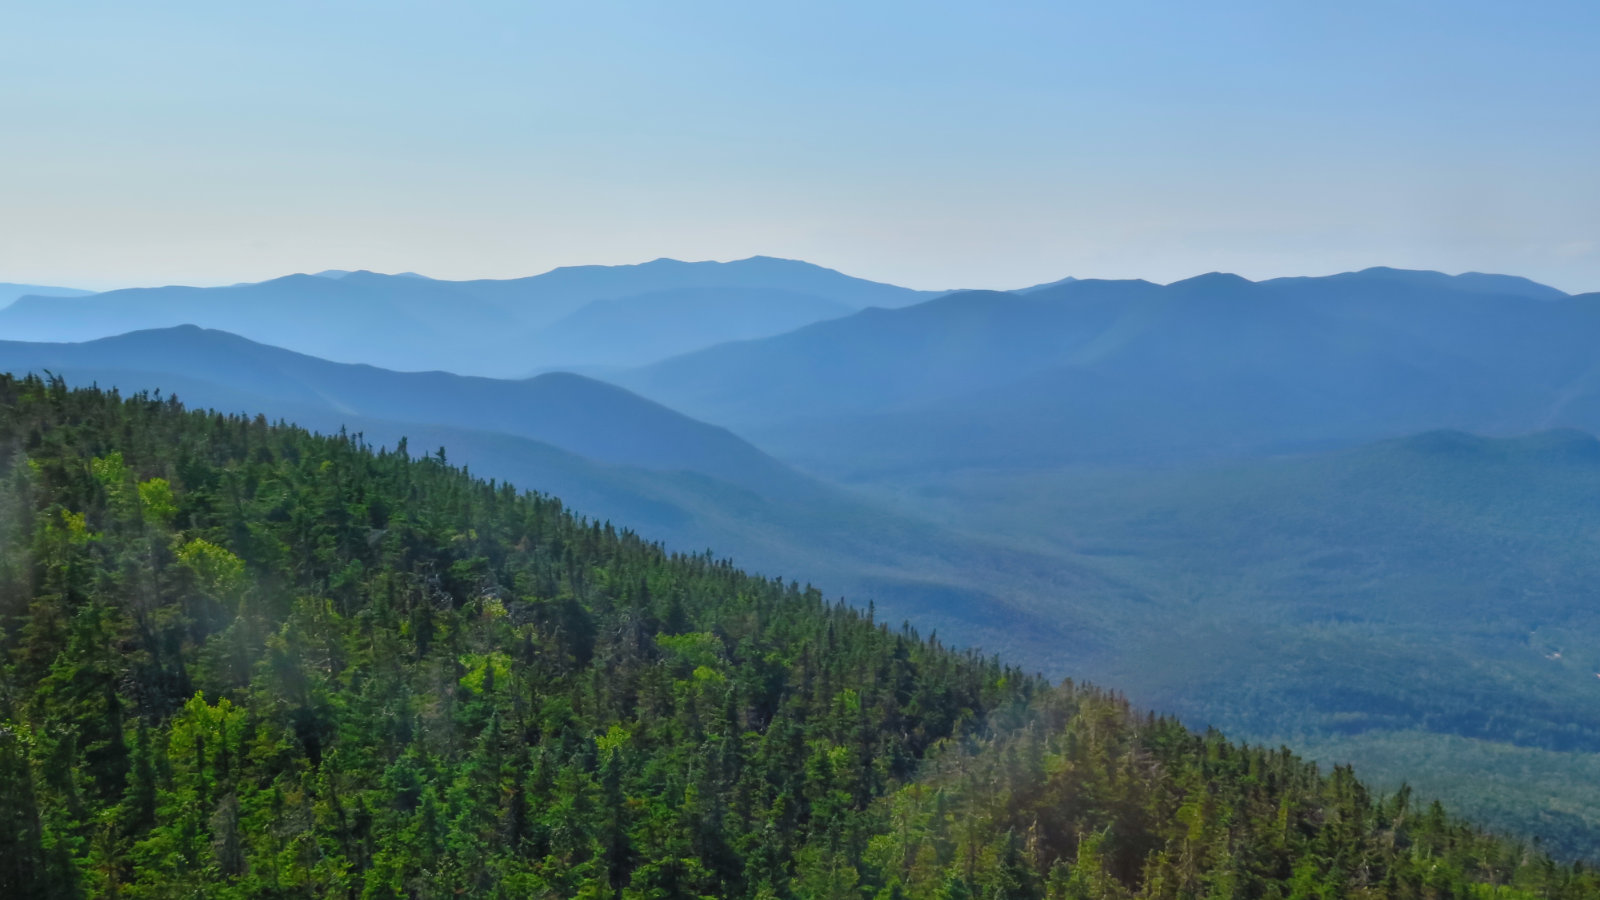 Pemigewasset_Wilderness_Carrigain_20190803